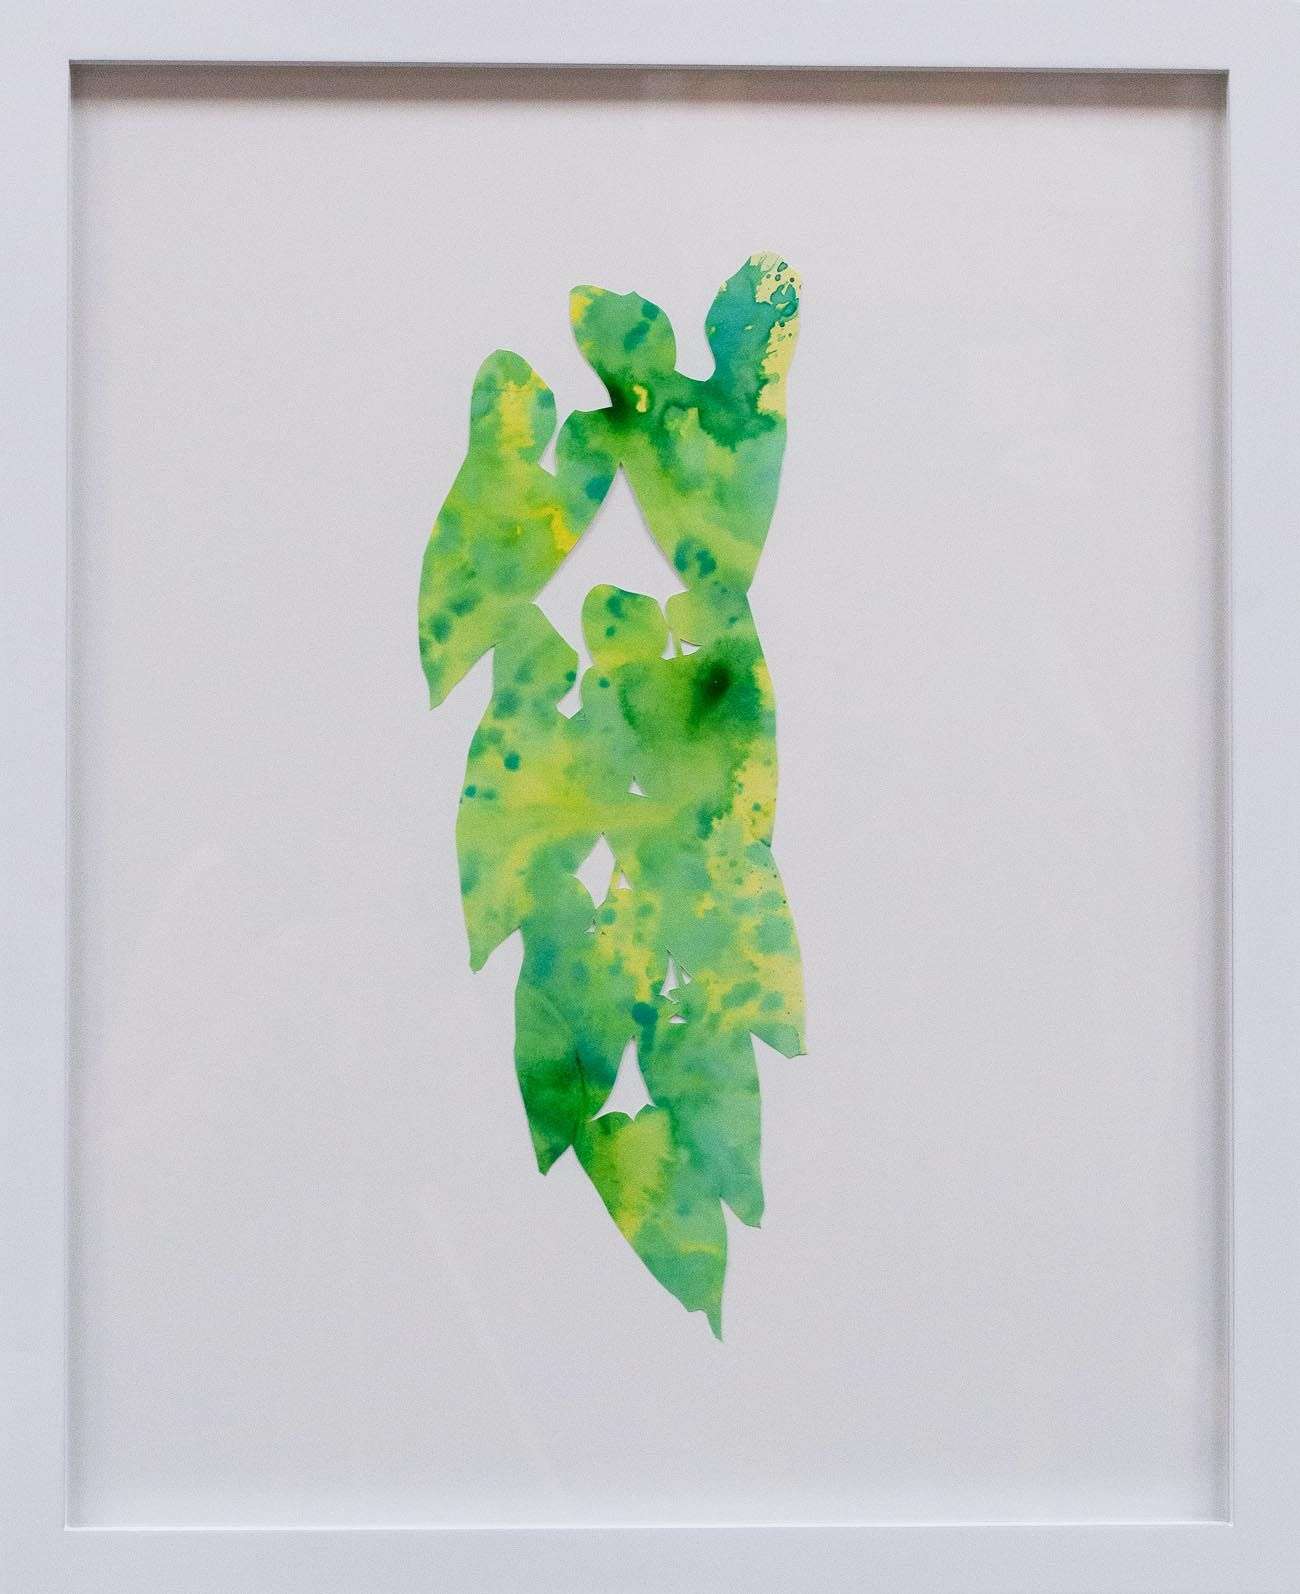 Hannah Cole  Smilax, 2018  watercolor on cut paper  Framed: 20h x 16w in 50.80h x 40.64w cm  HC_053